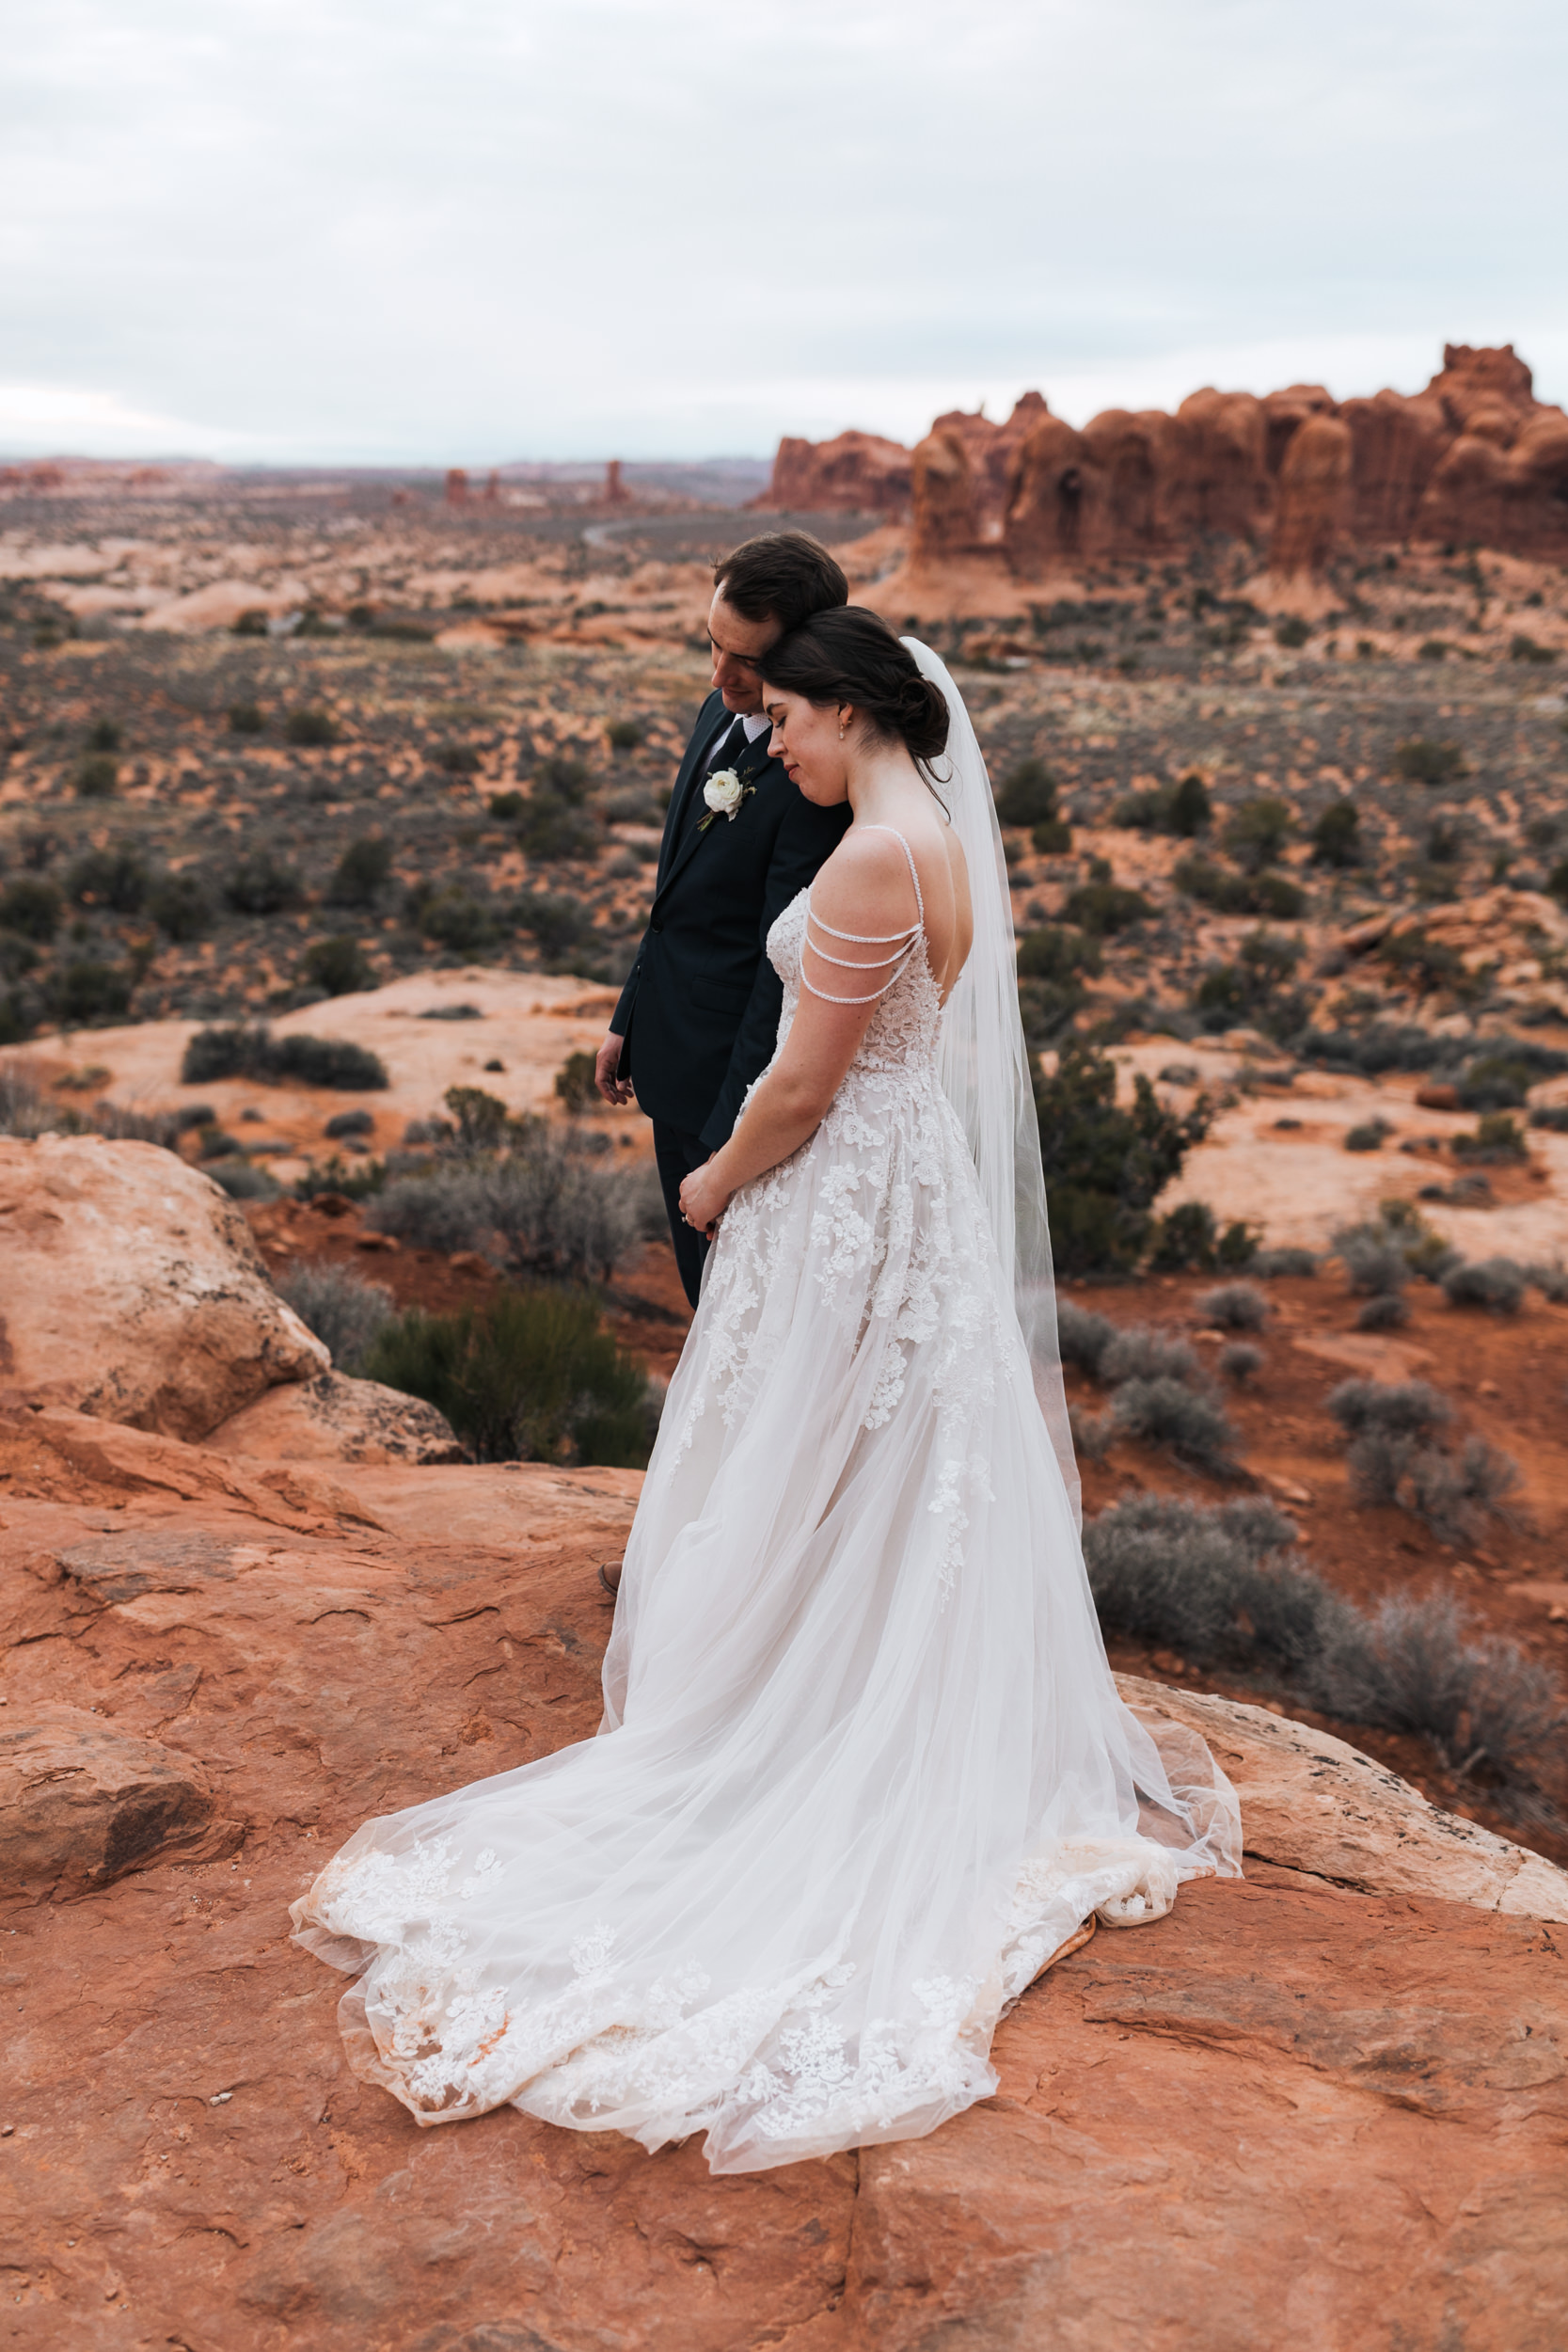 Beautiful views are all over the place in Arches National Park and make for tons of great locations for wedding photography.